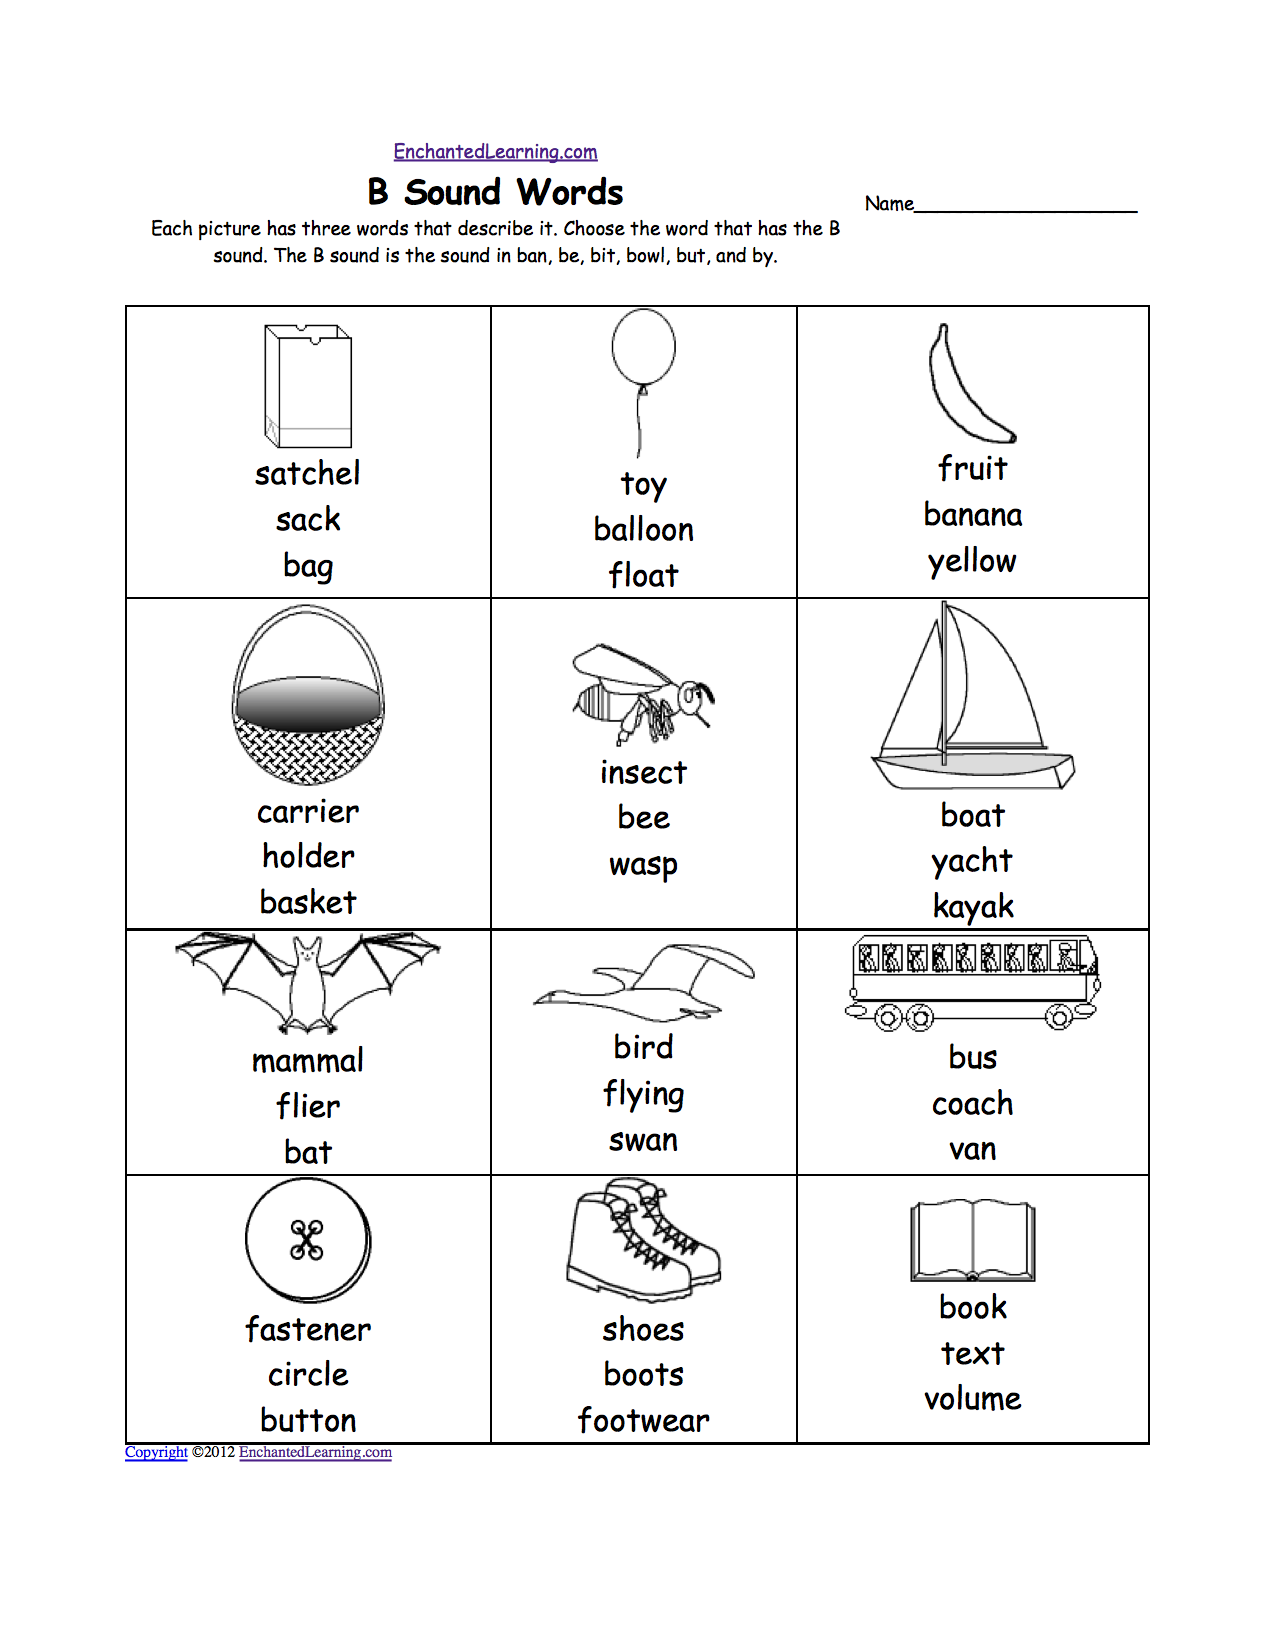 Proatmealus  Outstanding Phonics Worksheets Multiple Choice Worksheets To Print  With Fascinating Quotbquot Sound Phonics Worksheet Multiple Choice Each Picture Has Three Words That Describe It Choose The Word That Has A Quotbquot Sound The Quotbquot Sound Is The Sound  With Appealing Free Articulation Worksheets Also Calculating Momentum Worksheet In Addition Music Worksheets Free And Halloween Worksheets For Kids As Well As Free Ela Worksheets Additionally Th Grade Word Problems Worksheet From Enchantedlearningcom With Proatmealus  Fascinating Phonics Worksheets Multiple Choice Worksheets To Print  With Appealing Quotbquot Sound Phonics Worksheet Multiple Choice Each Picture Has Three Words That Describe It Choose The Word That Has A Quotbquot Sound The Quotbquot Sound Is The Sound  And Outstanding Free Articulation Worksheets Also Calculating Momentum Worksheet In Addition Music Worksheets Free From Enchantedlearningcom